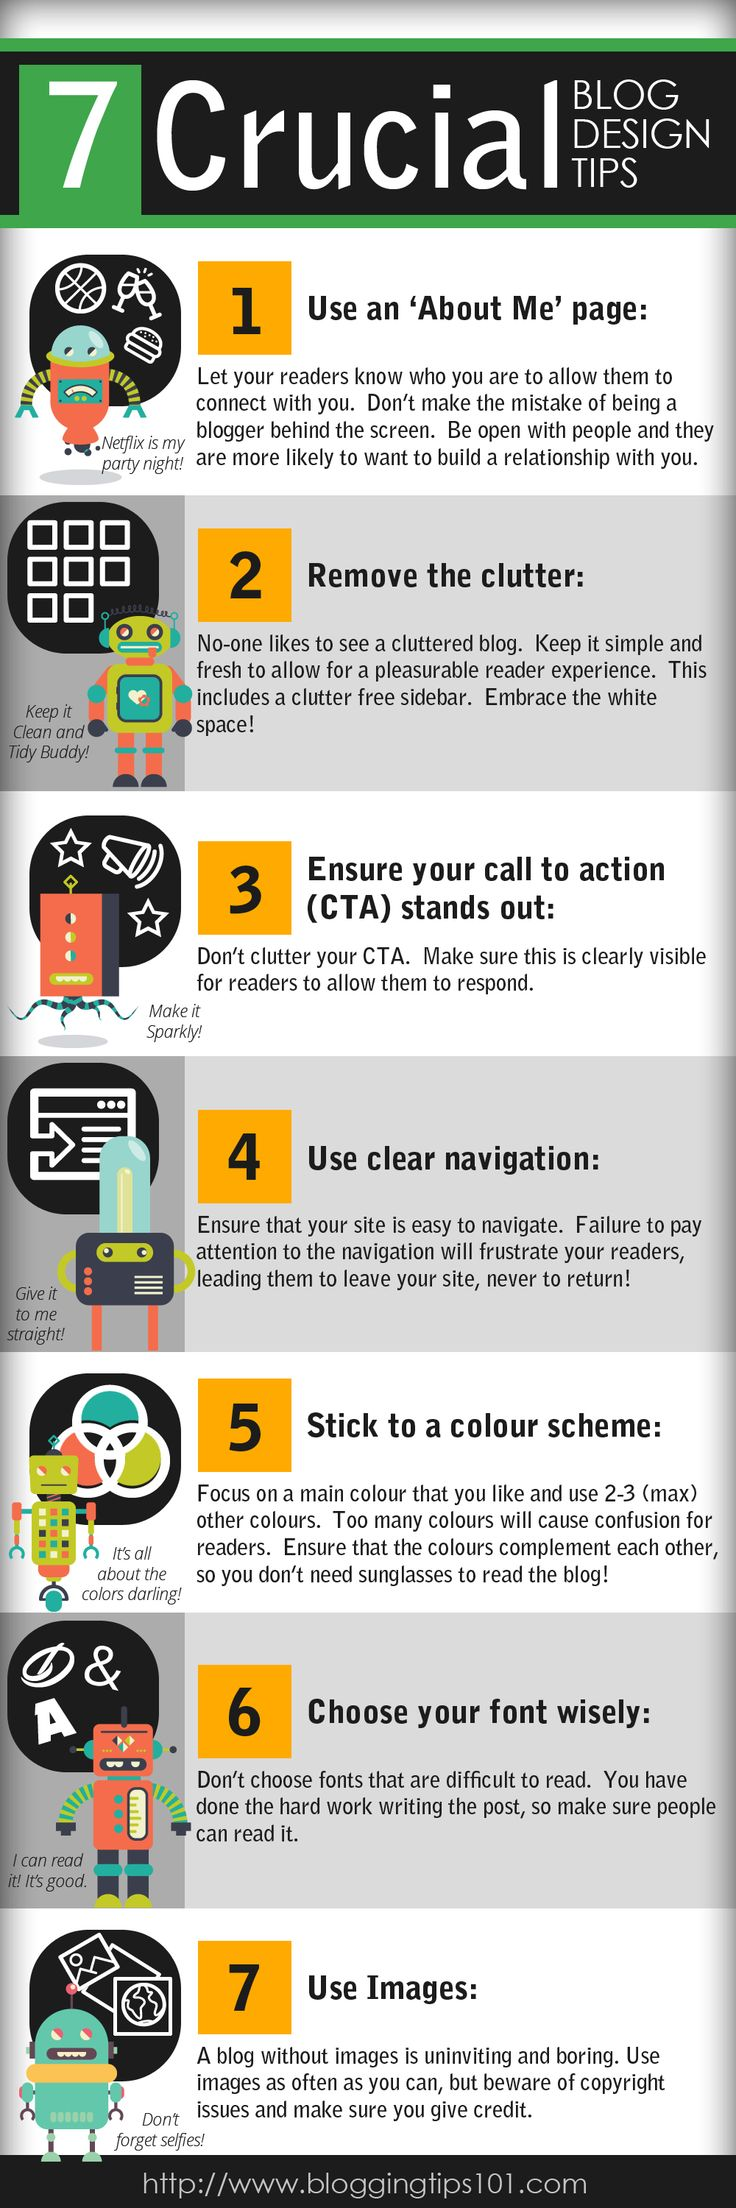 7 Crucial Blog Design Tips #Infographic